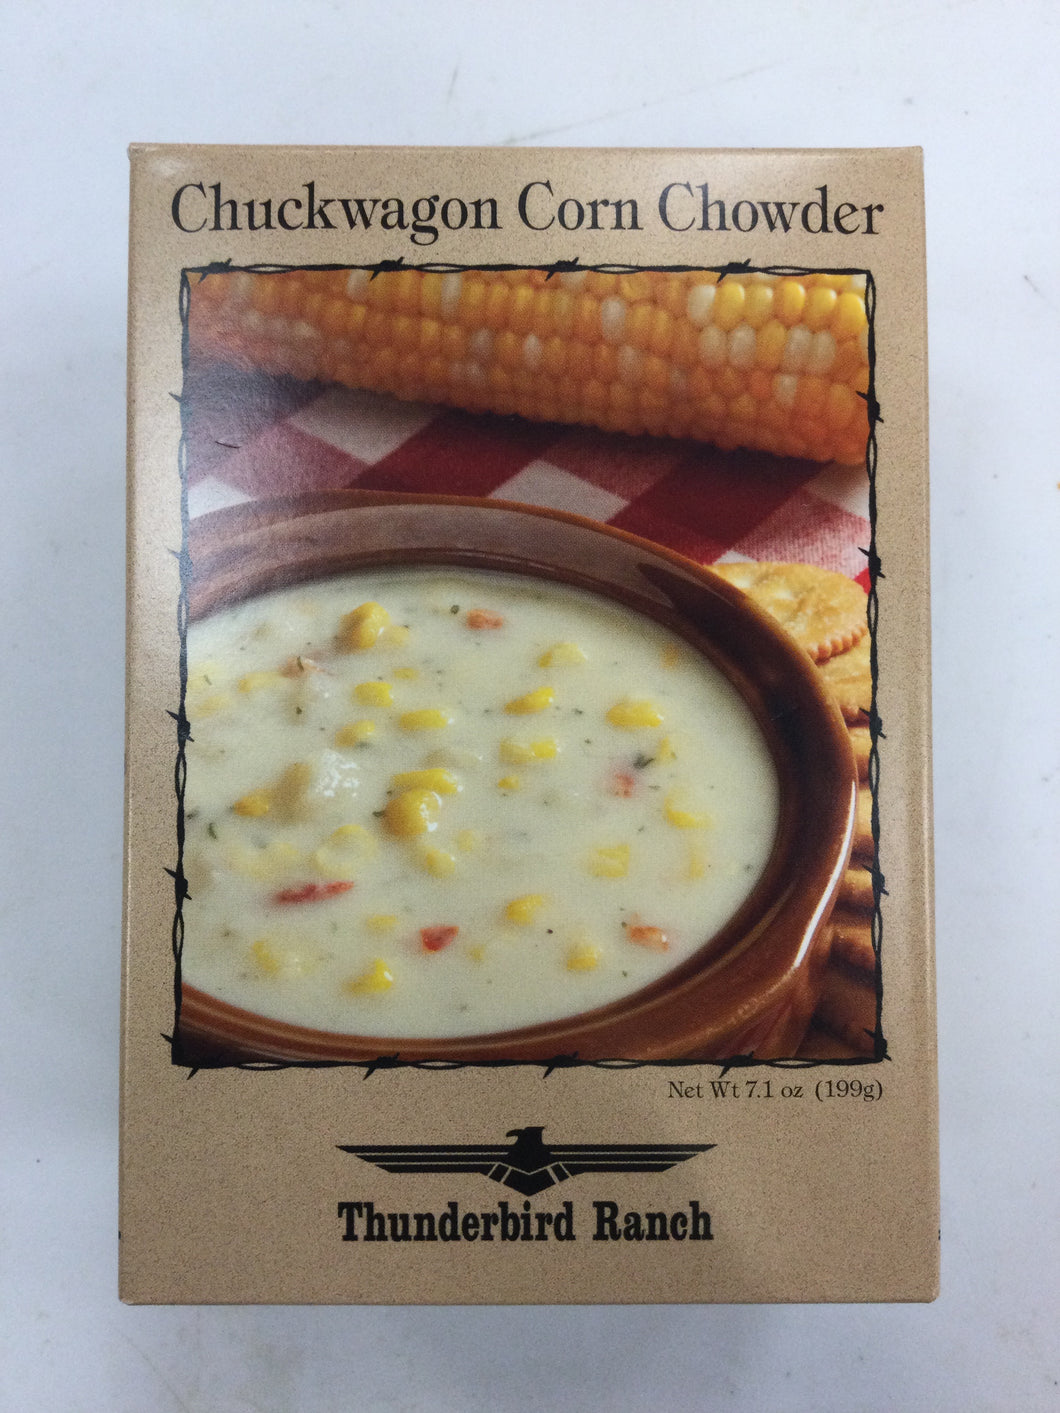 Thunderbird Ranch Chuckwagon Corn Chowder